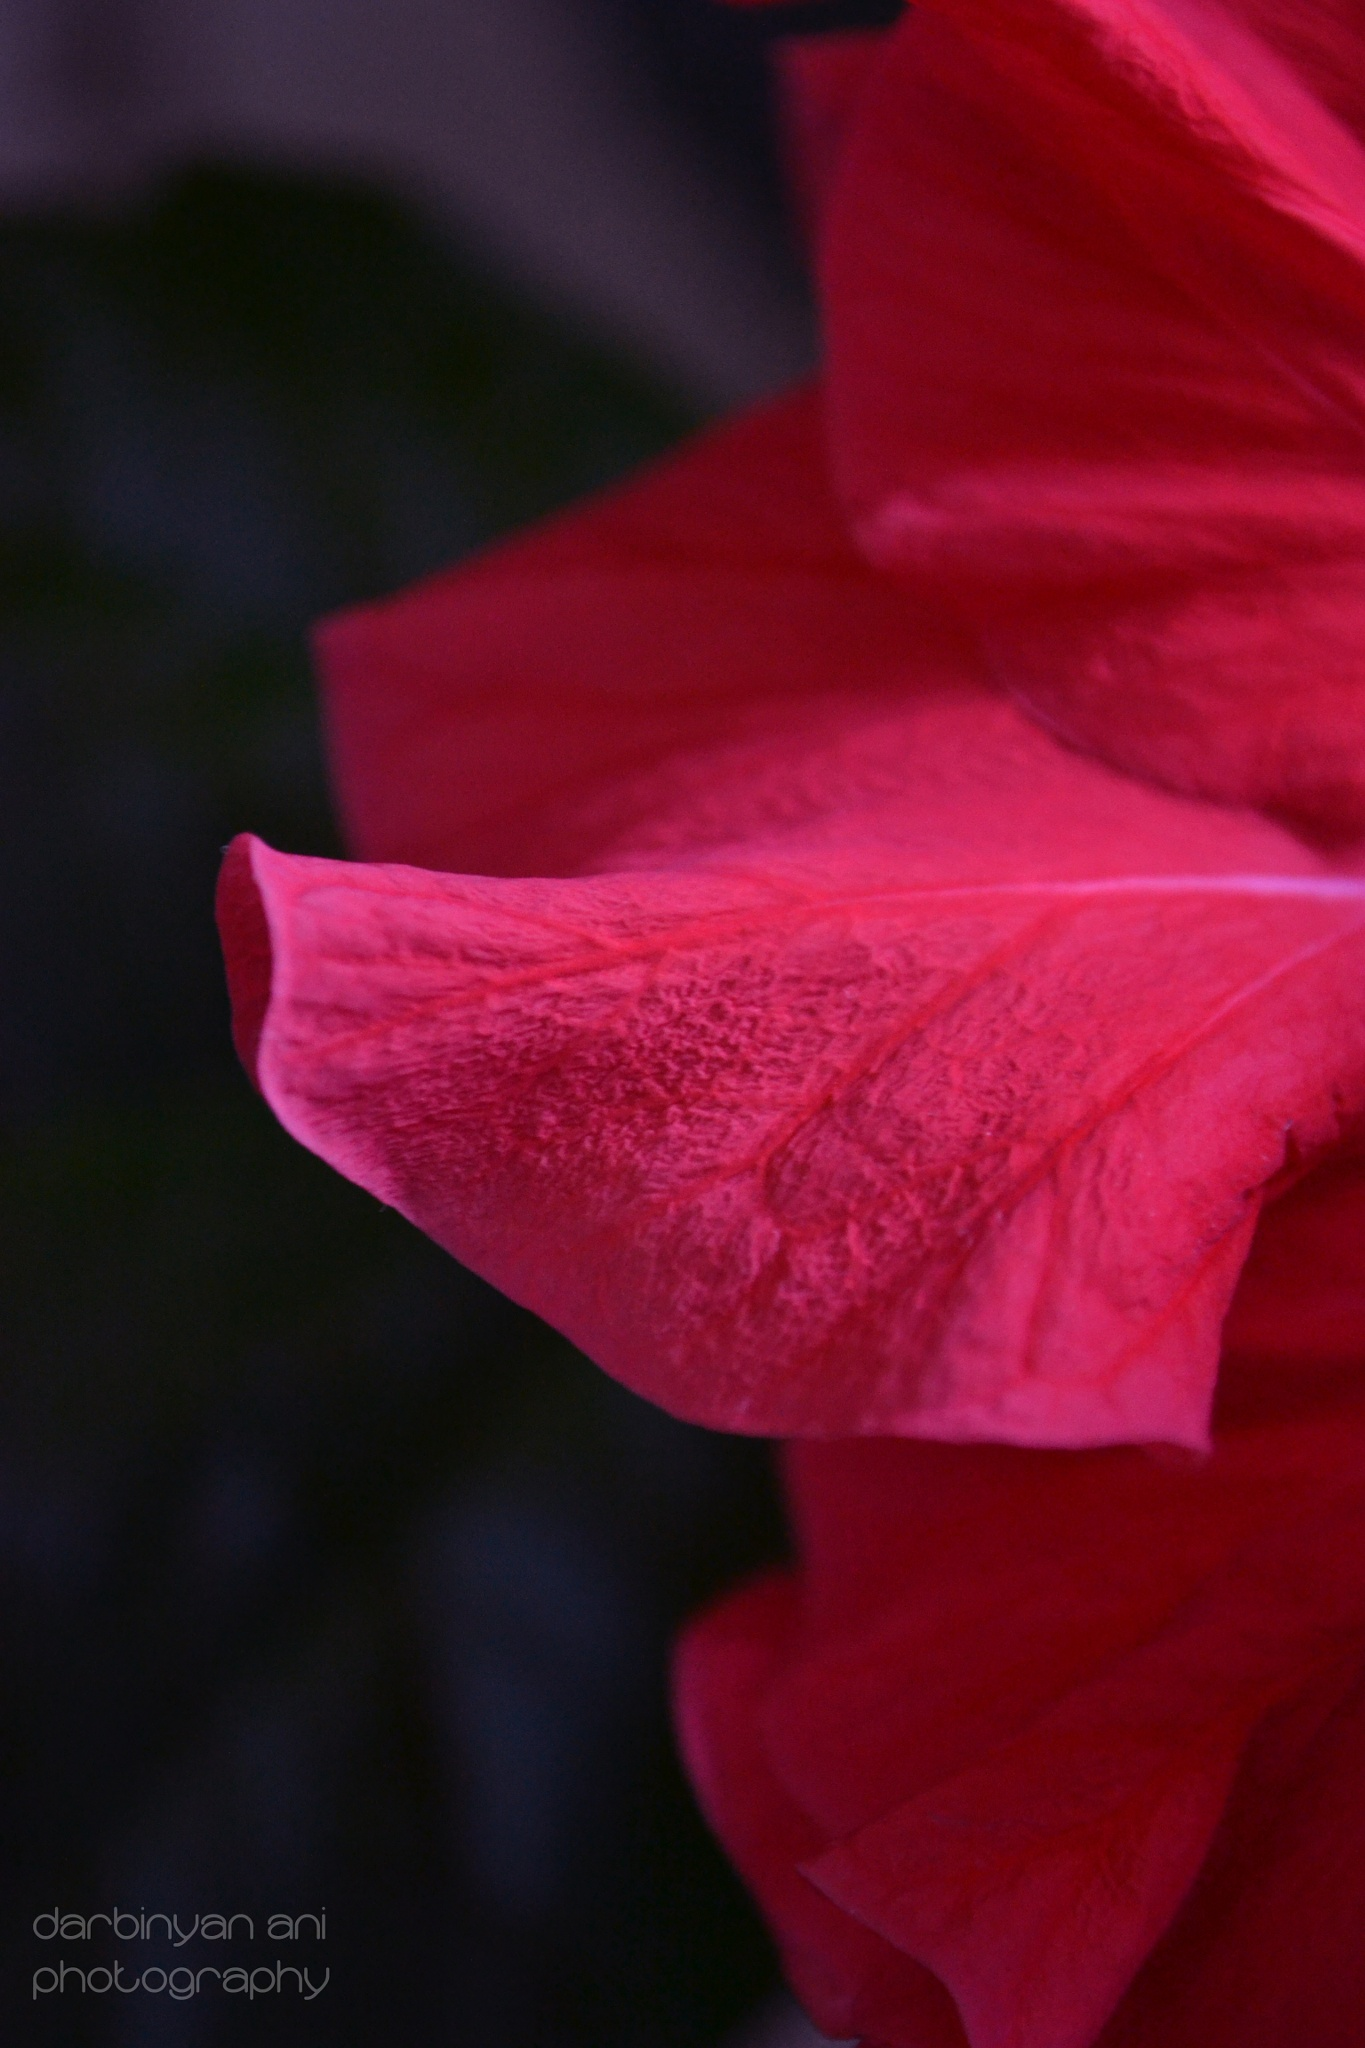 Red Red Red by ani darbinyan